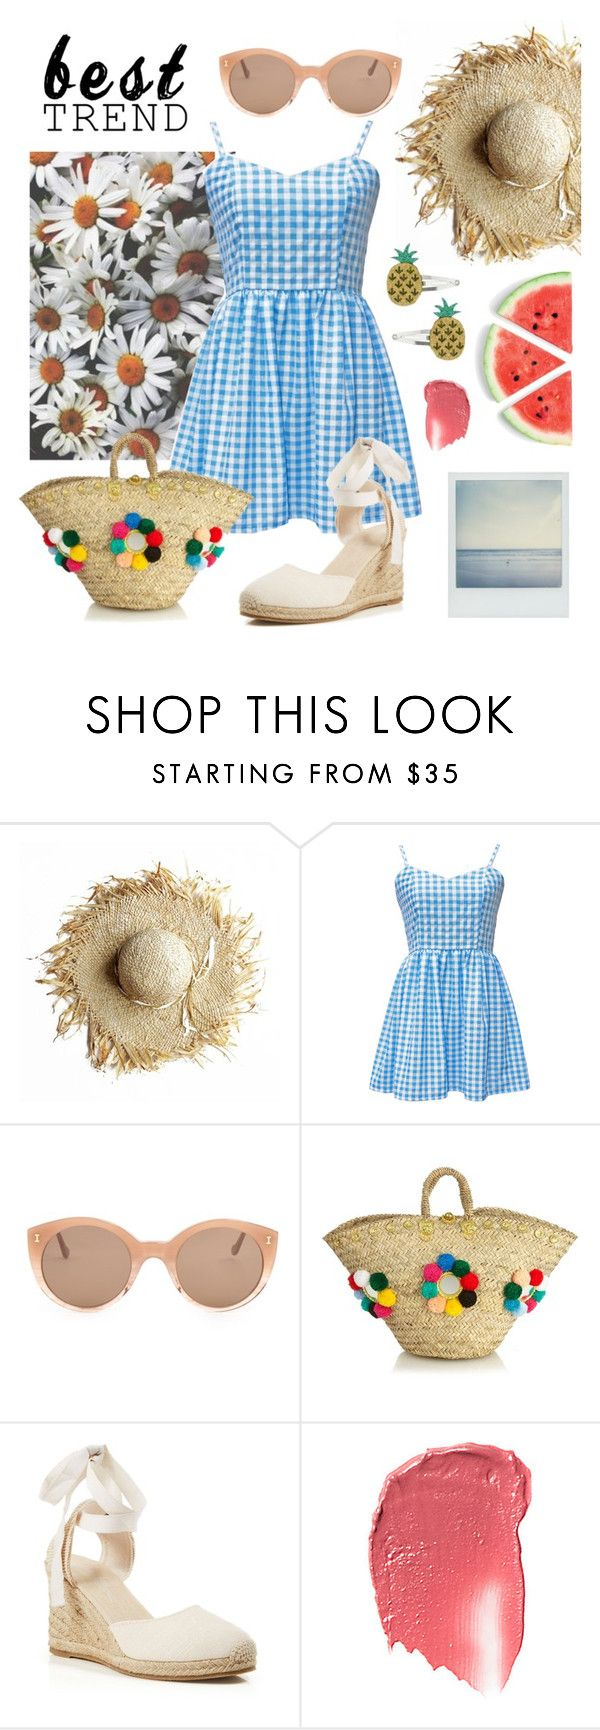 """""""Celebrate Our 10th Polyversary!"""" by sophier on Polyvore featuring Polaroid, Illesteva, Muzungu Sisters, Soludos, Miss Selfridge, polyversary and contestentry"""